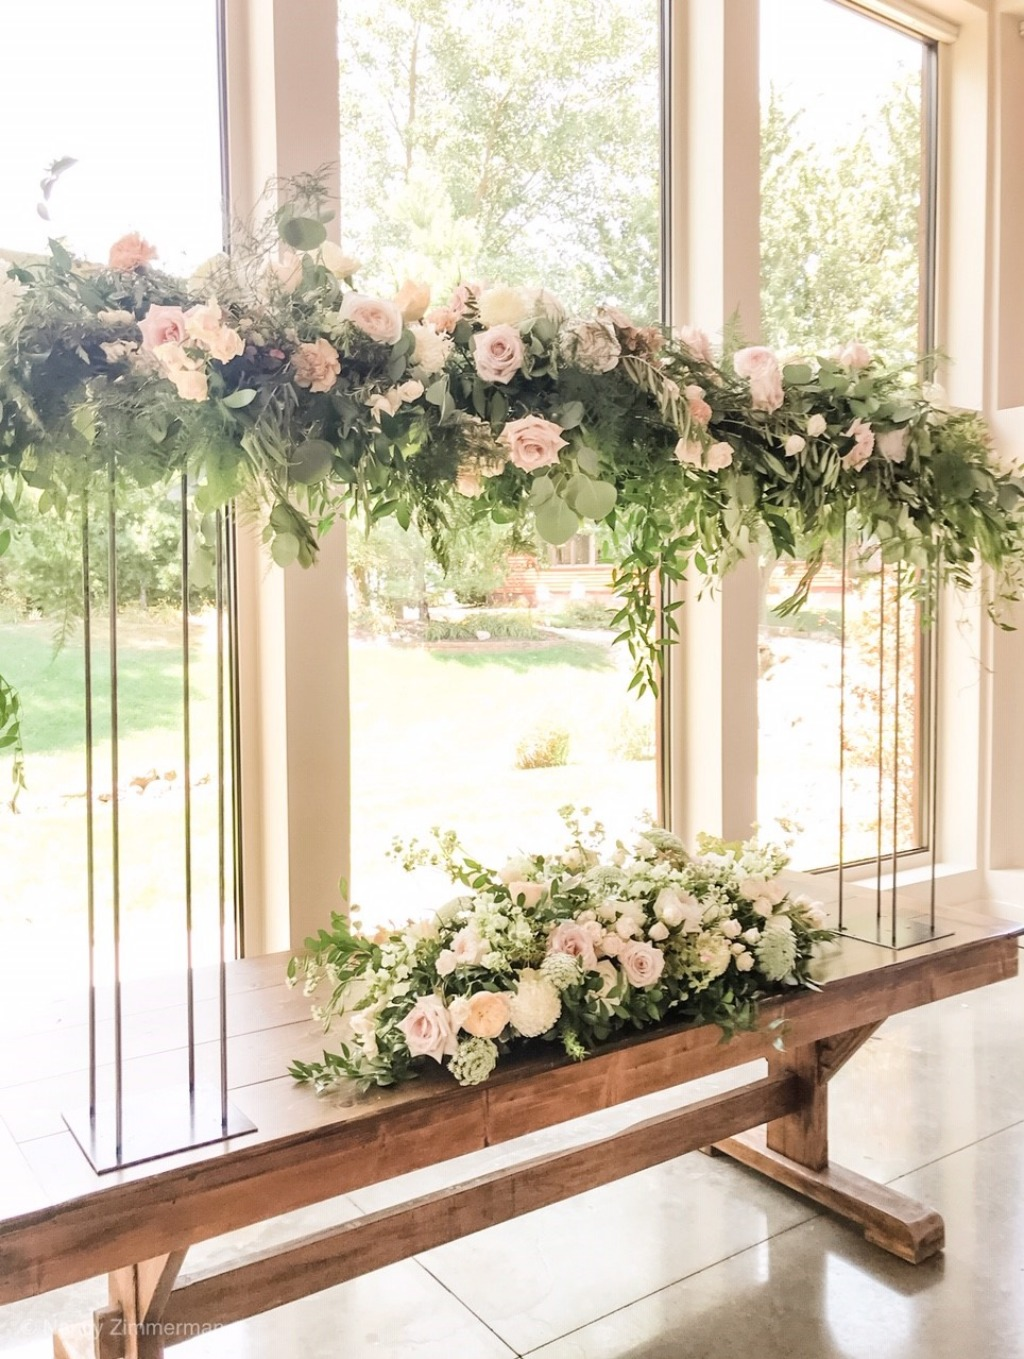 This lush tabletop pergola and floral spray were created as a beautiful backdrop for the wedding ceremony. It also was moved to the